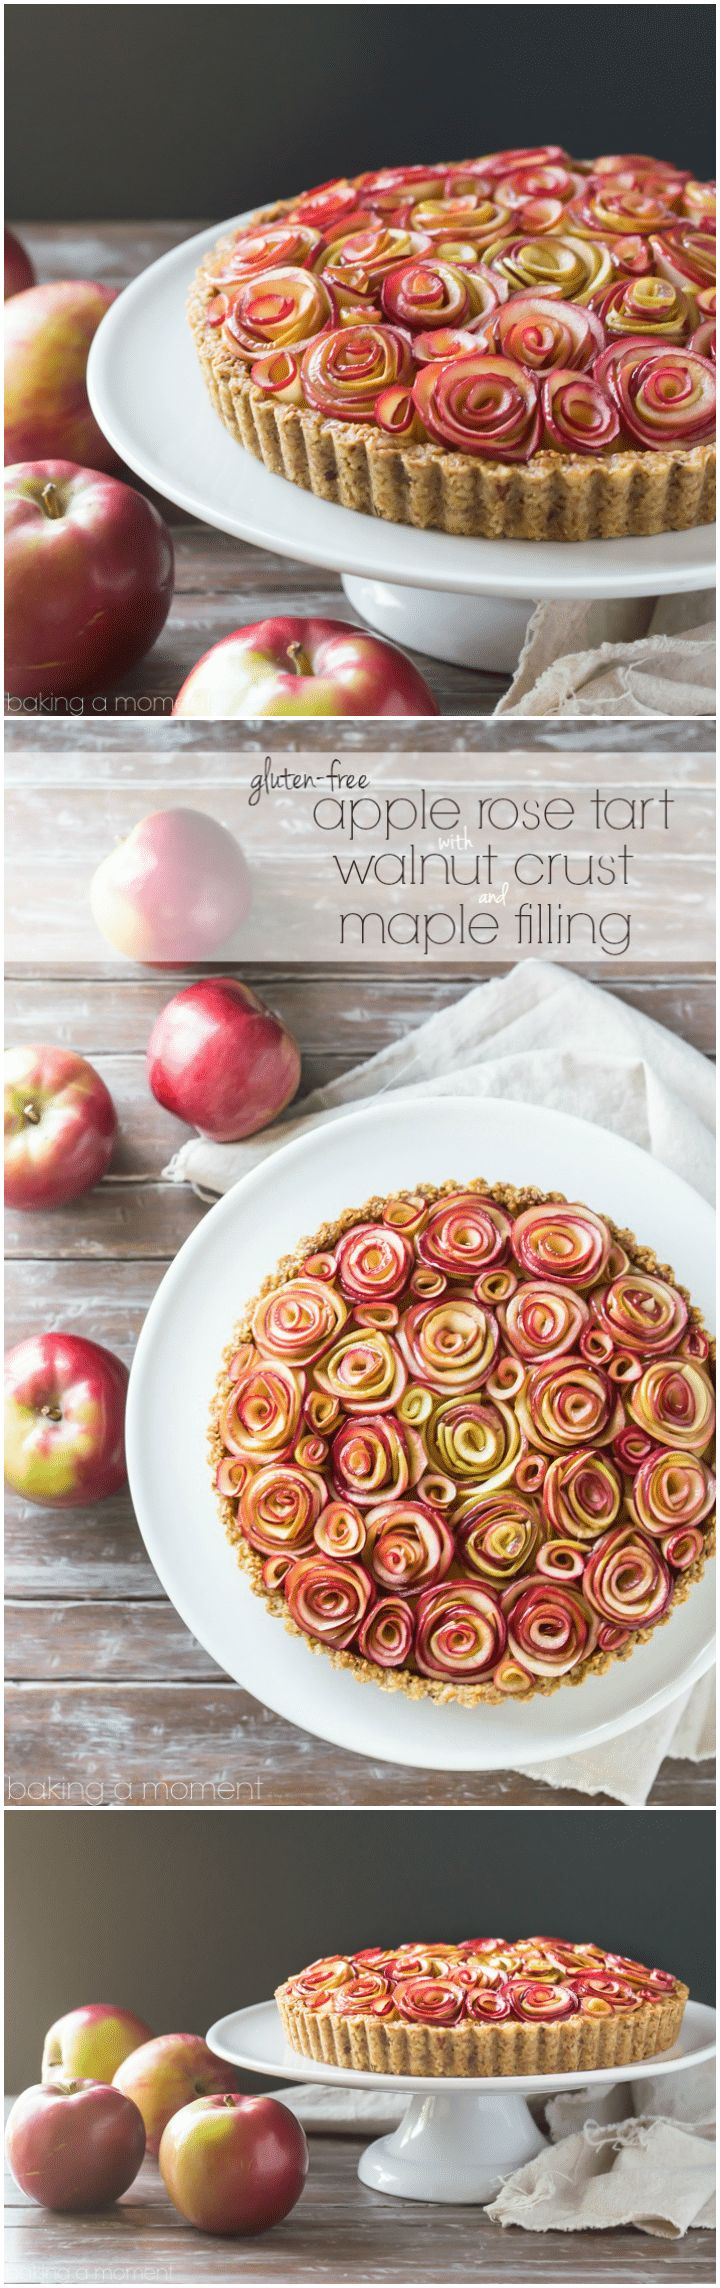 Your guests will be wowed by this gorgeous apple tart of roses, with a toasty walnut crust and a silky sweet maple custard filling. And it's gluten-free!